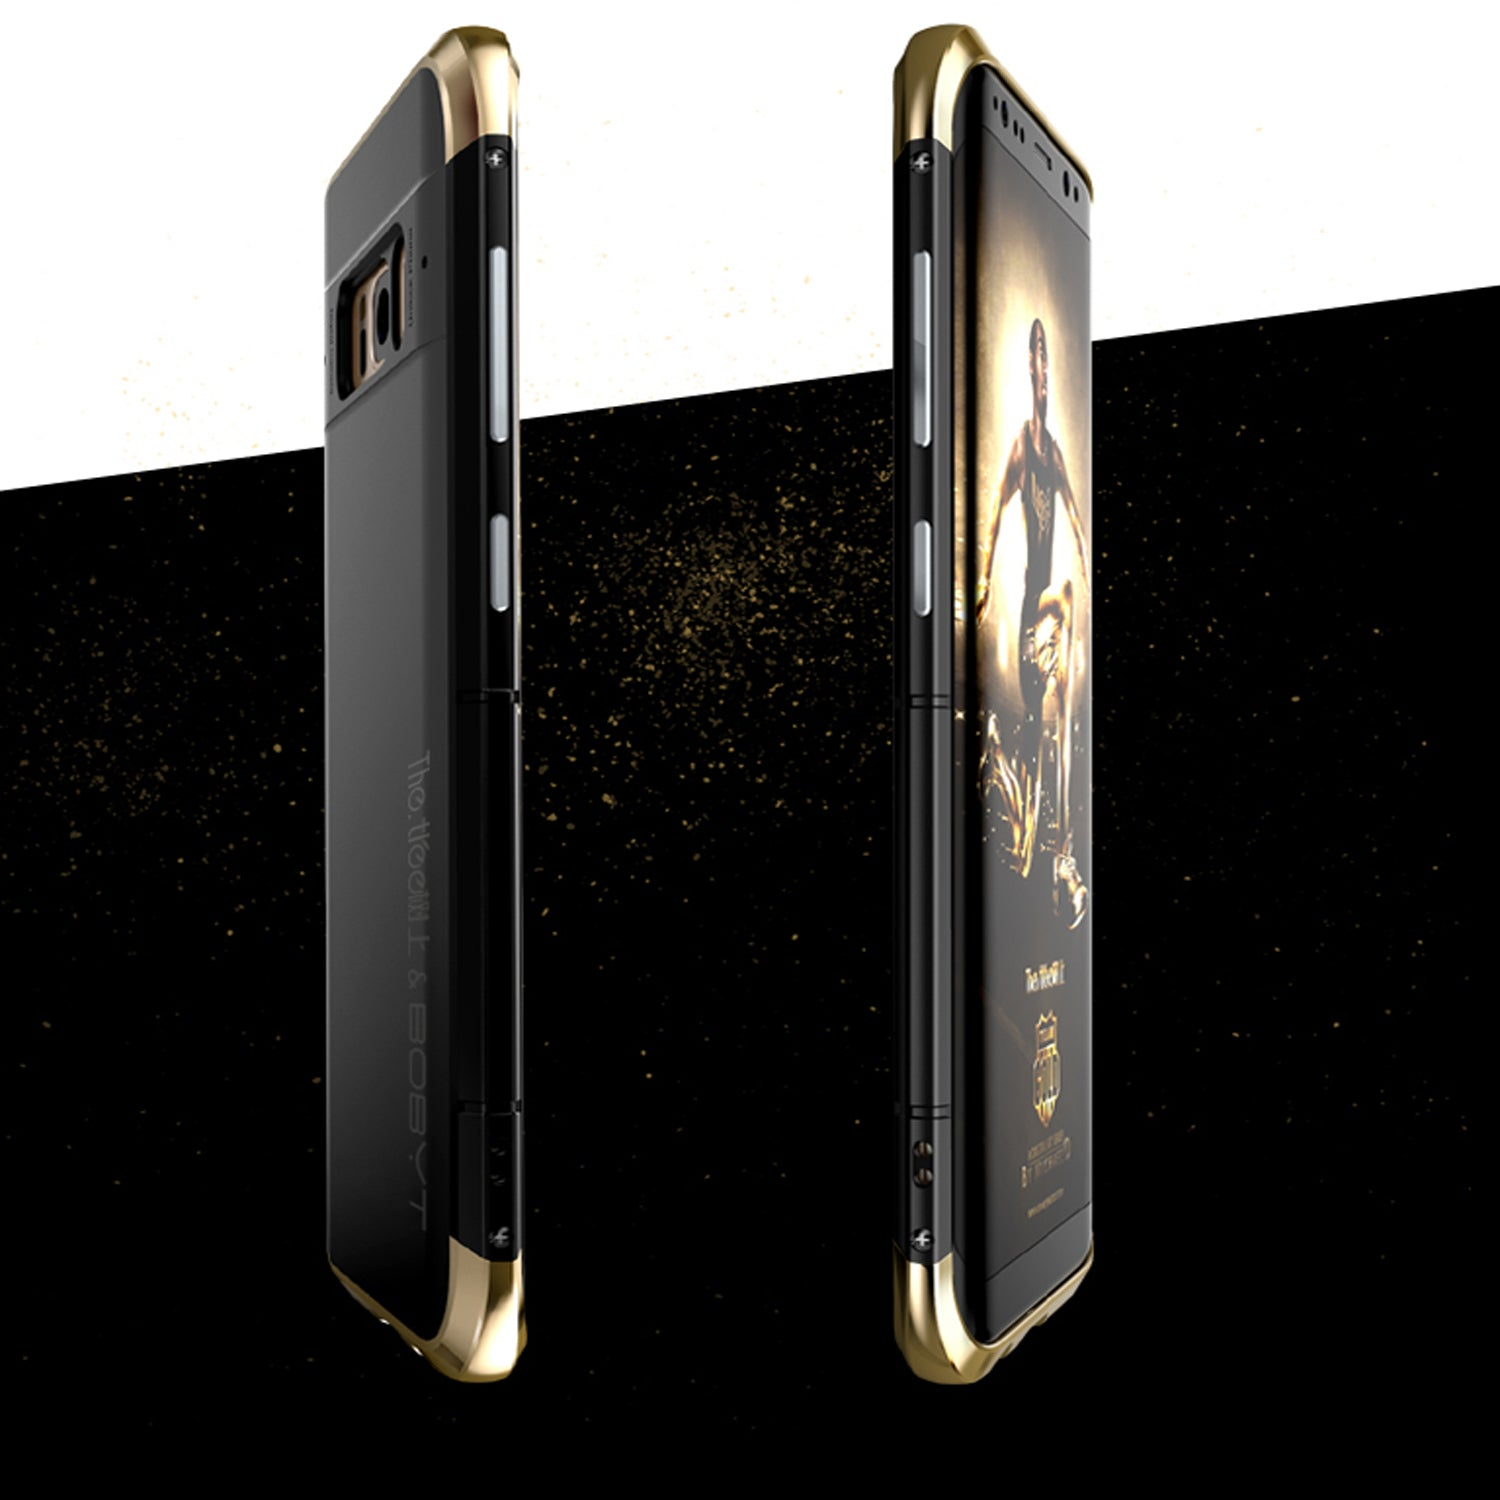 Aluminium Metal Frame PC Hard Back Shock Proof Case Cover for Samsung Galaxy S8 - Black, Gold - Mobizang